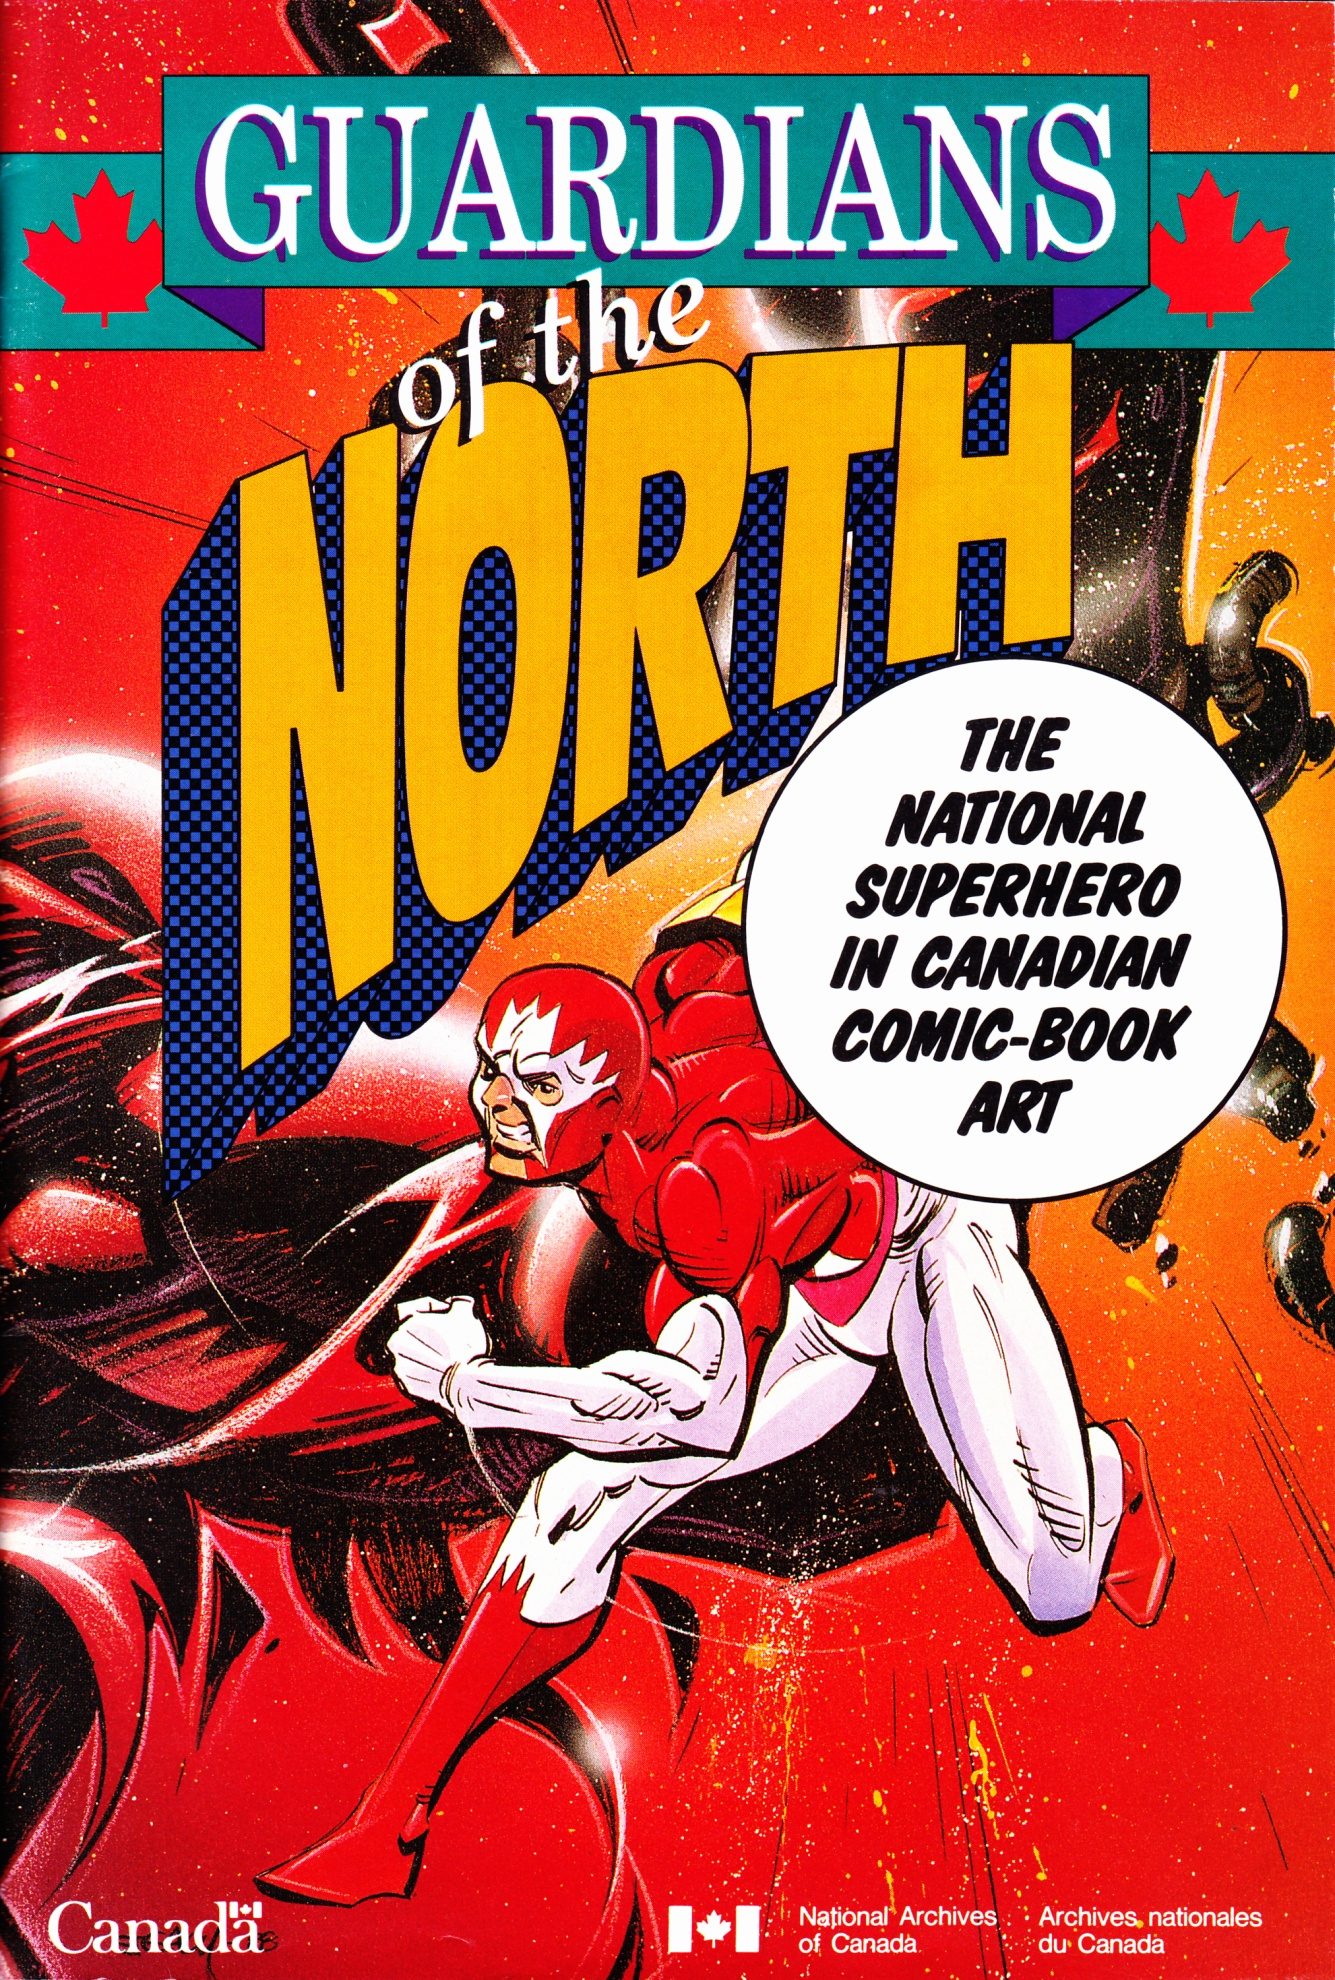 C:\Users\Robert\Documents\CARTOONING ILLUSTRATION ANIMATION\IMAGE COVER PERIODICAL\CANADIAN MUSEUM OF CARICATURE_0001.jpg